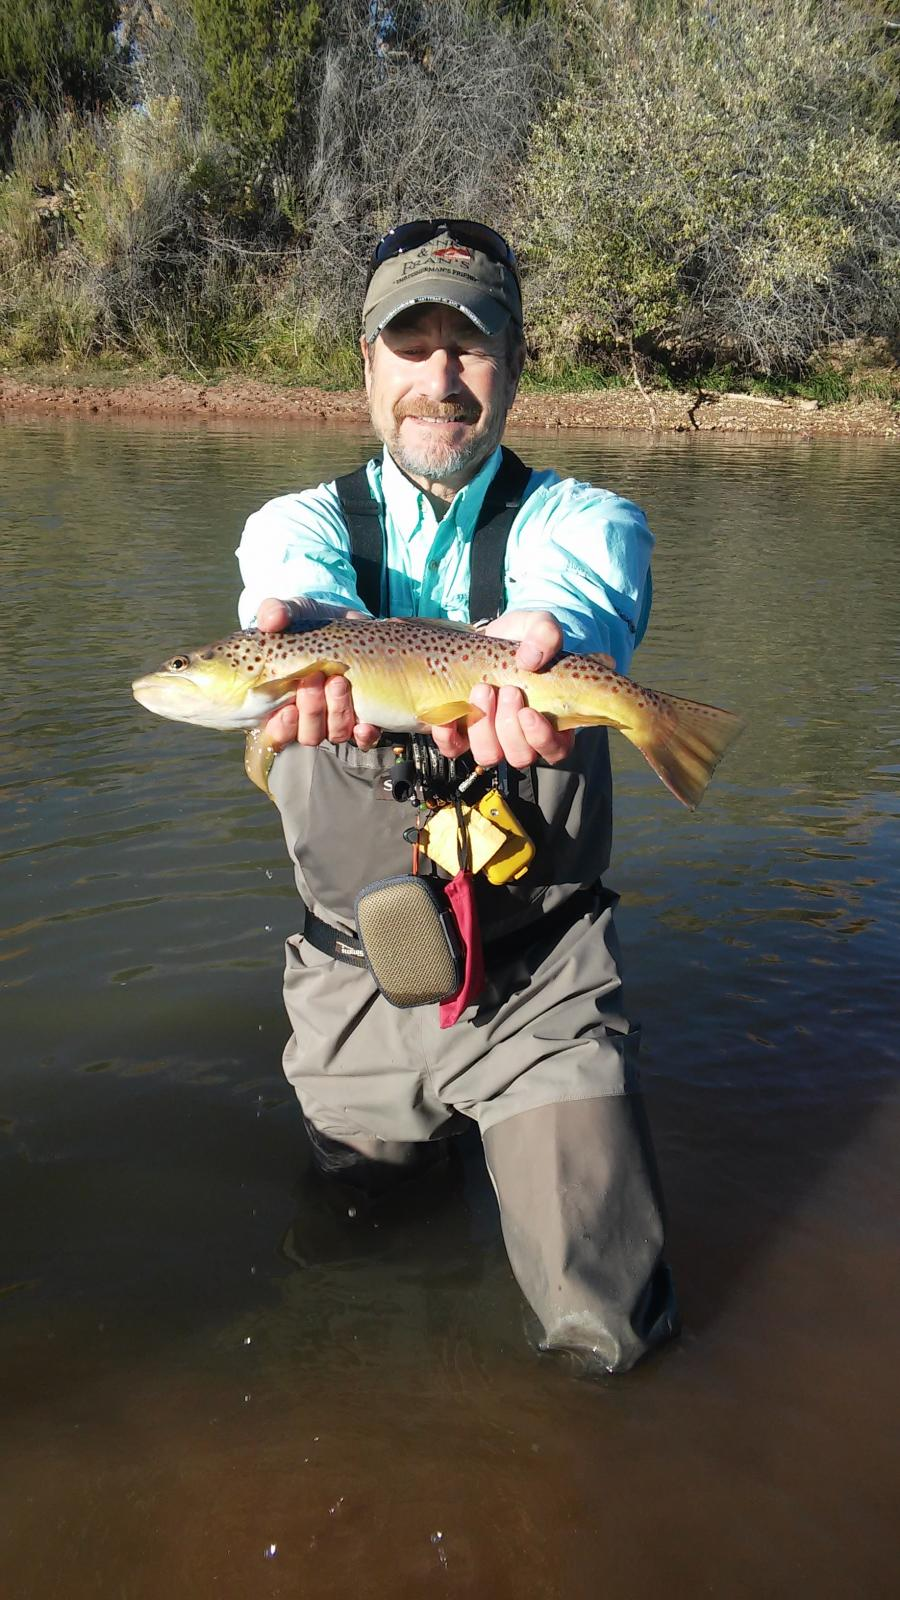 Fly fishing new mexico in the winter fishing for Fly fishing new mexico